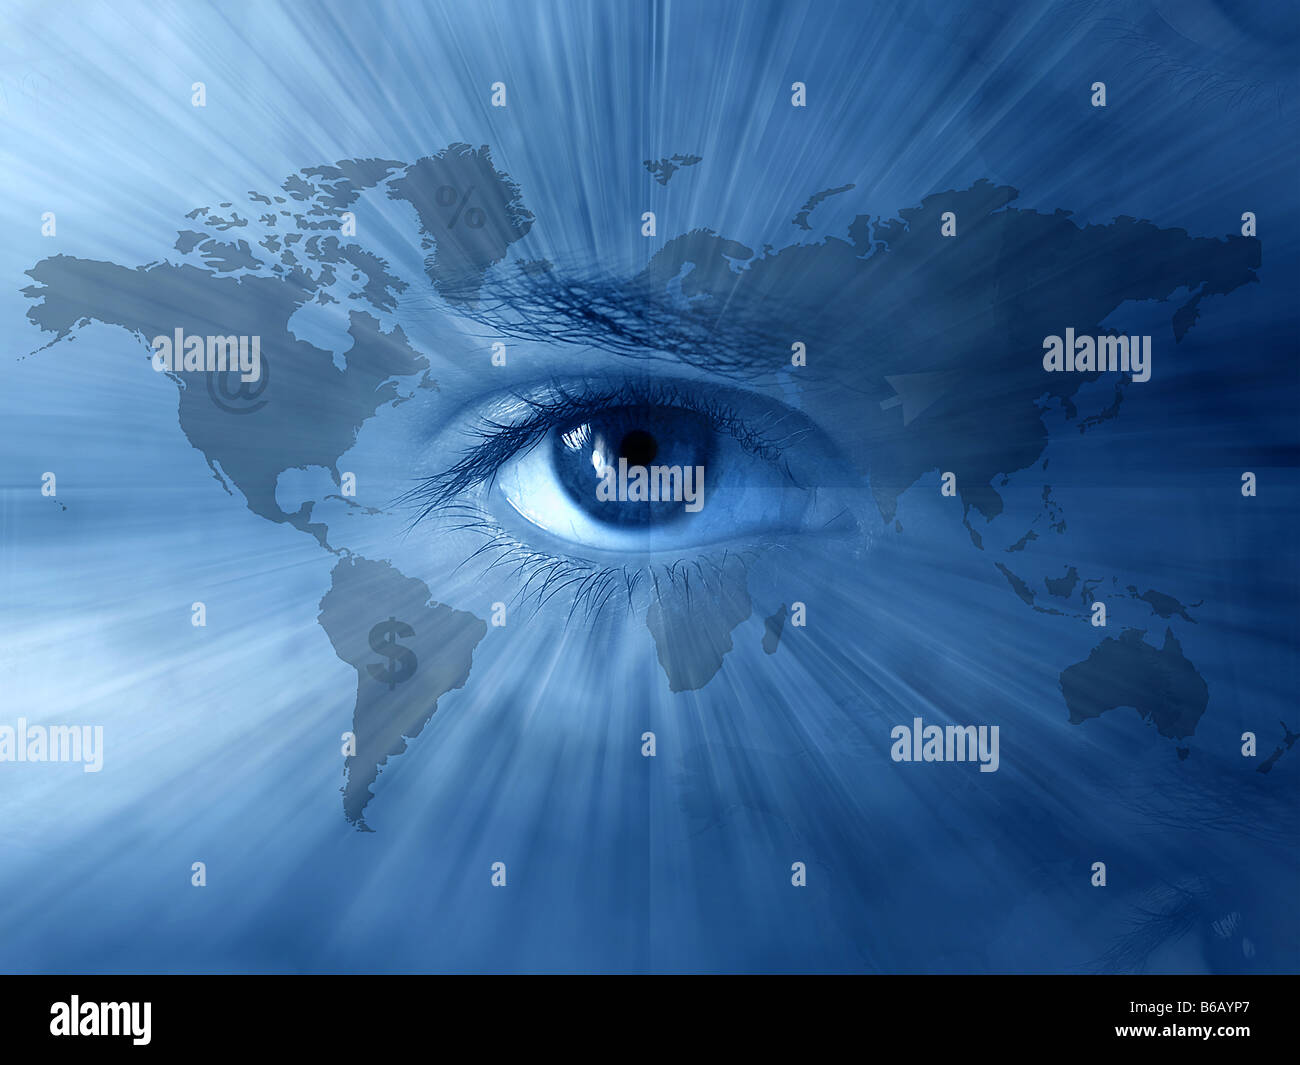 Continental abstract wallpaper with world map and blue eyes stock continental abstract wallpaper with world map and blue eyes gumiabroncs Gallery